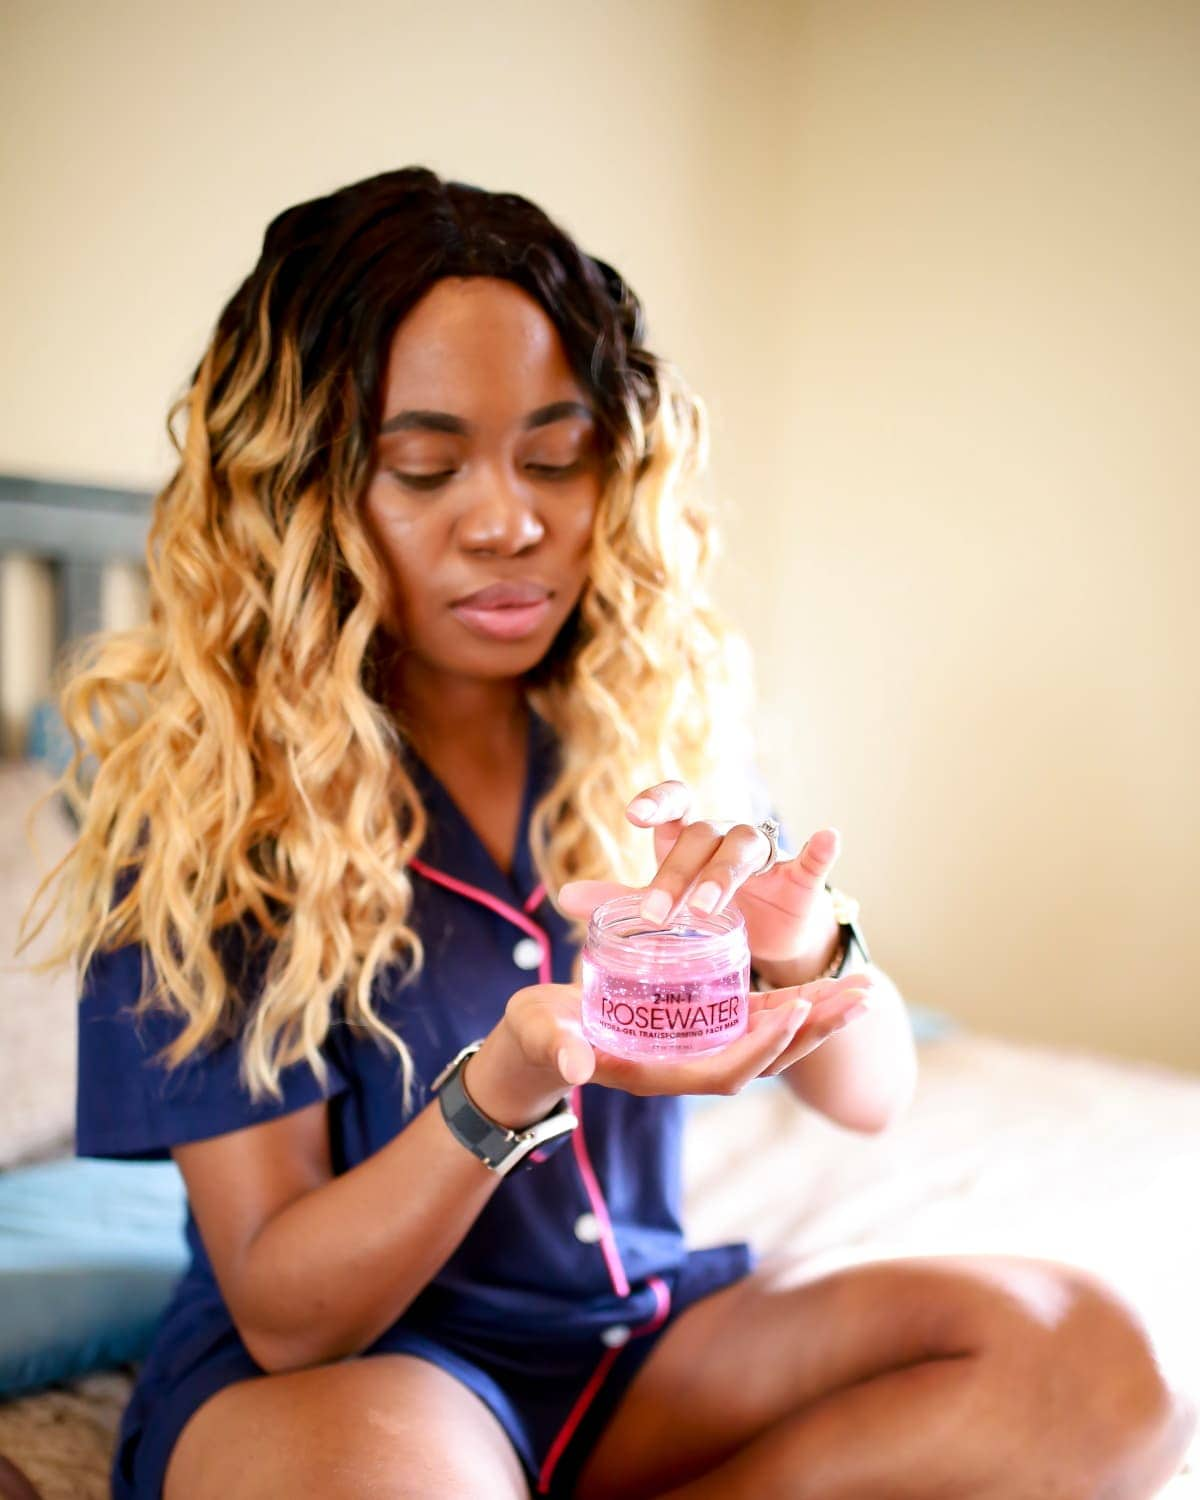 #rosewater #facemaskforwrinkles The new kid on the block is the Advanced Clinicals 2-in-1 rosewater mask. I tried this product out so you won't have to waste your money or time. Keep reading for a full recap of my experience using this Advanced Clinicals rosewater mask. #facemaskforglowingskin